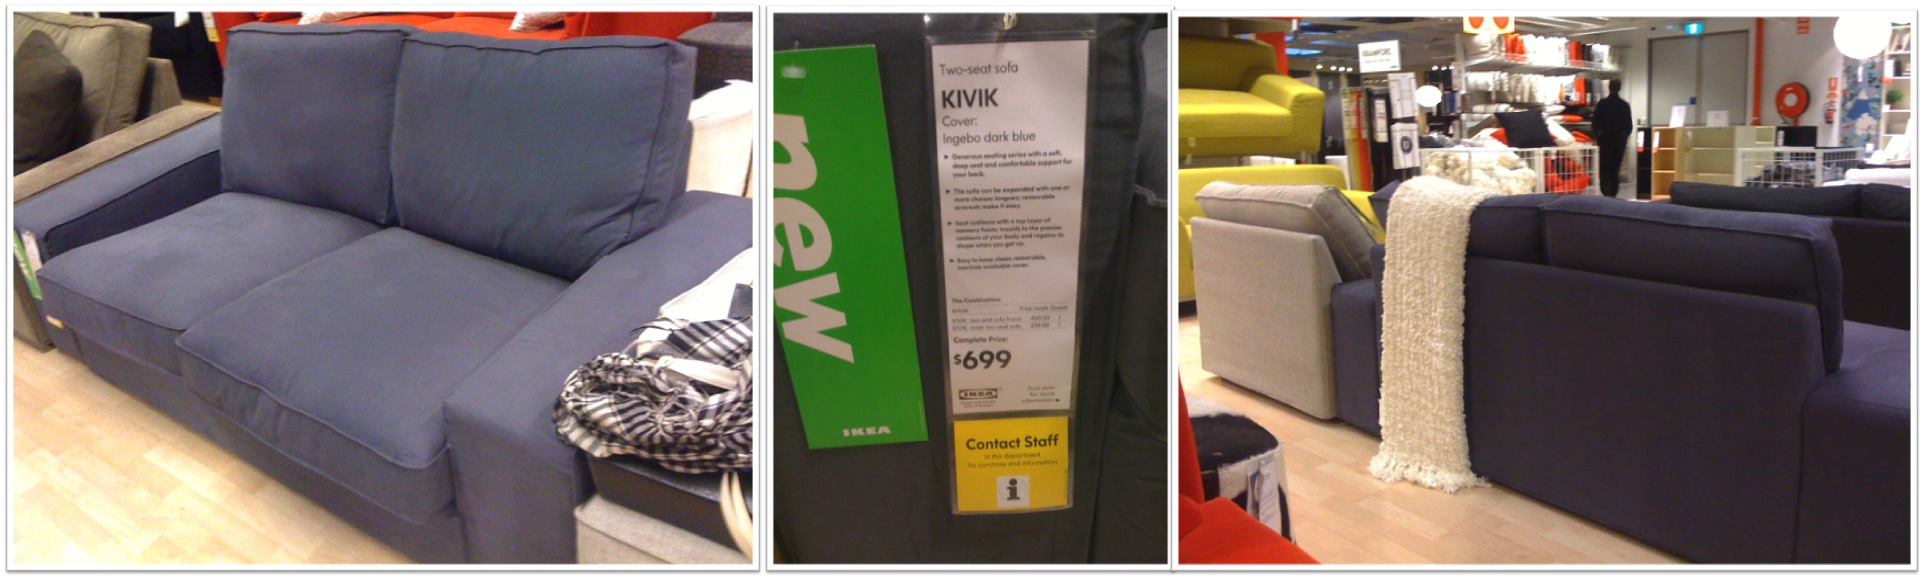 ikea kivik sofa series review comfort works blog design inspirations. Black Bedroom Furniture Sets. Home Design Ideas